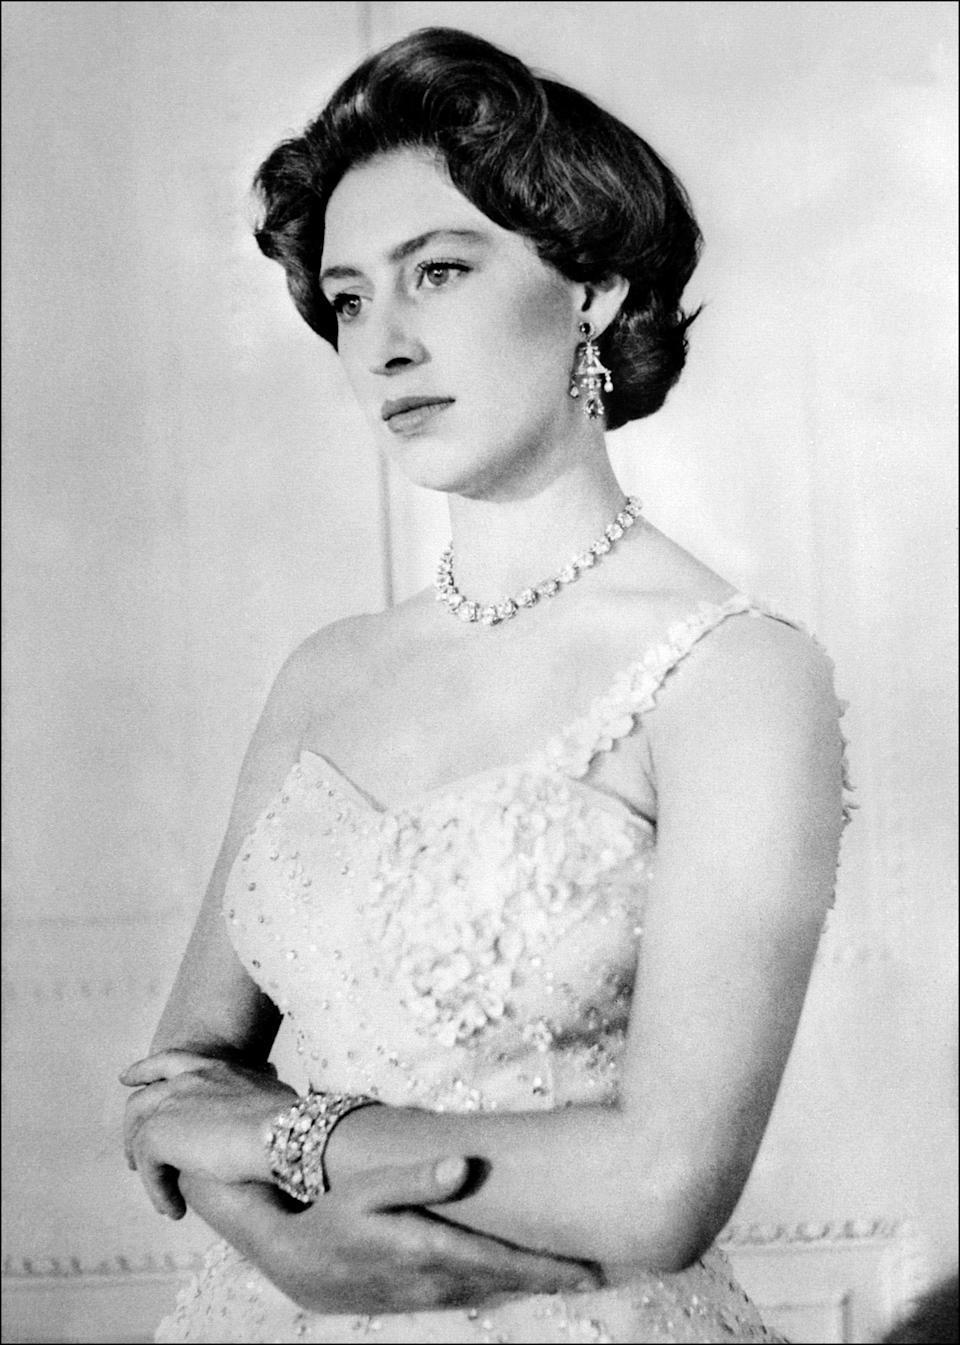 "<p>Princess Margaret, also known as the Countess of Snowdon, was Queen Elizabeth II's younger and only sibling. She was known as one of the royal family's most vivacious characters, and fans are learning more about her thanks to <a href=""https://www.oprahmag.com/entertainment/tv-movies/a28521636/the-crown-season-3-netflix-release-date-trailer-cast-news/"" rel=""nofollow noopener"" target=""_blank"" data-ylk=""slk:Netflix's The Crown"" class=""link rapid-noclick-resp"">Netflix's <em>The Crown</em></a>. If you remember, in seasons 1 and 2, Vanessa Kirby portrayed her, and now, BAFTA award-winning actress Helena Bonham Carter has replaced Kirby in seasons 3 and 4. <a href=""https://www.oprahmag.com/entertainment/tv-movies/a30728358/the-crown-season-5-cast-release-date-photos-news/"" rel=""nofollow noopener"" target=""_blank"" data-ylk=""slk:In season 5"" class=""link rapid-noclick-resp"">In season 5</a>, <a href=""https://twitter.com/TheCrownNetflix/status/1278599466845704192?ref_src=twsrc%5Etfw%7Ctwcamp%5Etweetembed%7Ctwterm%5E1278599466845704192%7Ctwgr%5E&ref_url=https%3A%2F%2Fwww.oprahmag.com%2Fentertainment%2Ftv-movies%2Fa30728358%2Fthe-crown-season-5-cast-release-date-photos-news%2F"" rel=""nofollow noopener"" target=""_blank"" data-ylk=""slk:Netflix has cast Lesley Manville"" class=""link rapid-noclick-resp"">Netflix has cast Lesley Manville</a> to carry on the baton as Princess Margaret. <br></p><p>After World War II, in 1952, Margaret fell in love with Group Captain Peter Townsend—a Royal Air Force officer 16 years her senior—but the Church of England refused to support her marriage to a divorced man. Eventually, Margaret moved on and in 1960, she married the photographer Anthony Armstrong-Jones. <a href=""http://www.oprahmag.com/entertainment/tv-movies/a29801483/princess-margaret-children/"" rel=""nofollow noopener"" target=""_blank"" data-ylk=""slk:They had two children together, David and Sarah"" class=""link rapid-noclick-resp"">They had two children together, David and Sarah</a>. Margaret and Armstrong-Jones divorced in 1978 after a tumultuous marriage—<em>and </em>after the tabloids published photos of her on vacation with Roddy Llewellyn, a gardener 17 years younger than her. Later in life, Margaret's health started declining. She had a lung operation in 1985, pneumonia in 1993, and at least three strokes between 1998 and 2001. She passed away on February 9, 2002. In honor of her life, here are some photos of Princess Margaret through the years. </p>"